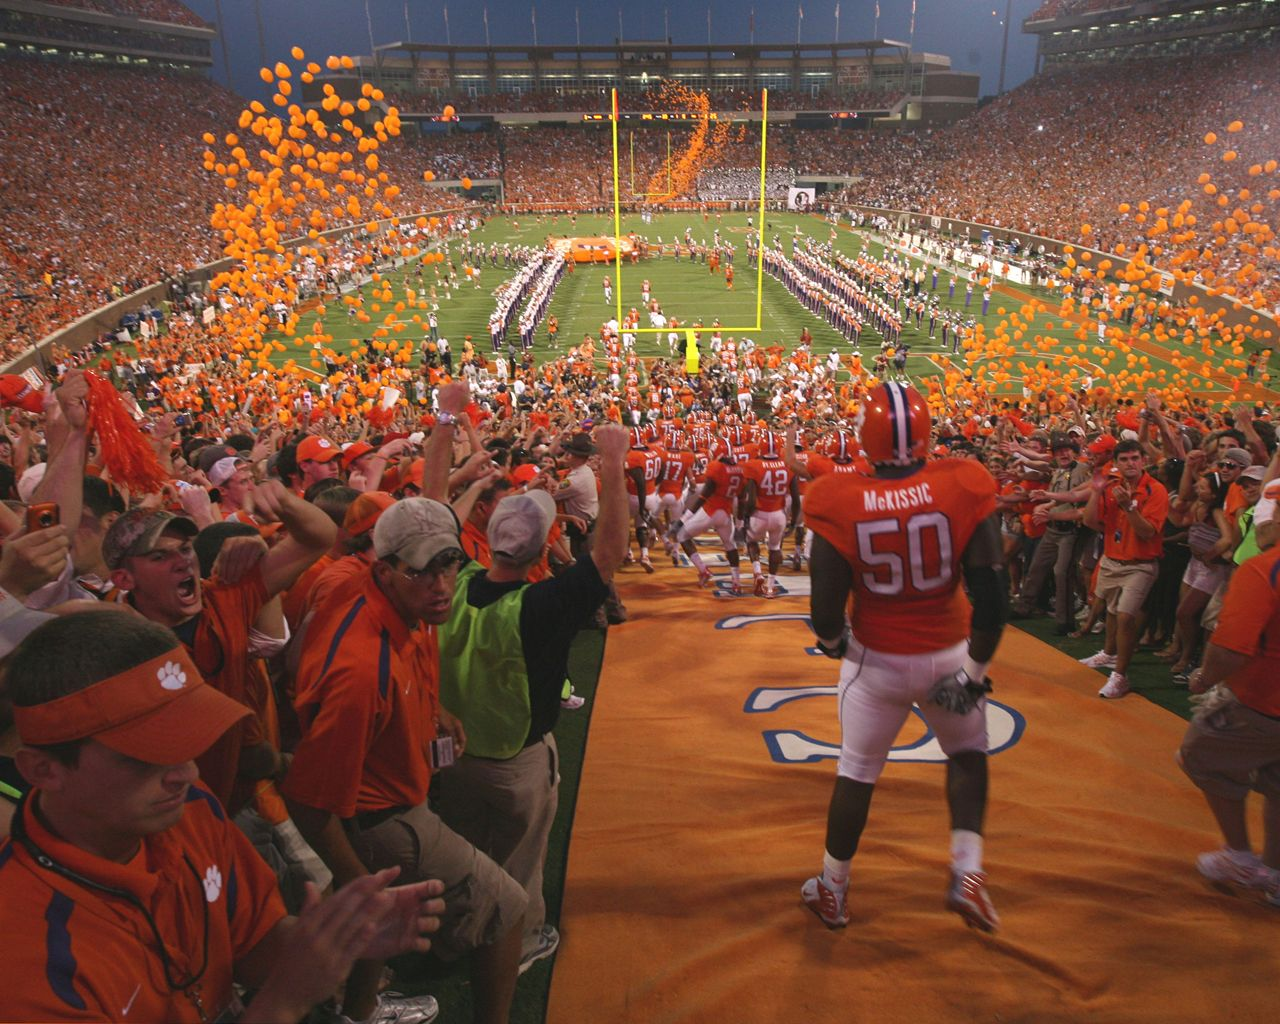 Clemson Game Day Tradition For The Players To Run Down The Hill Clemson Clemson University Clemson Tigers Football